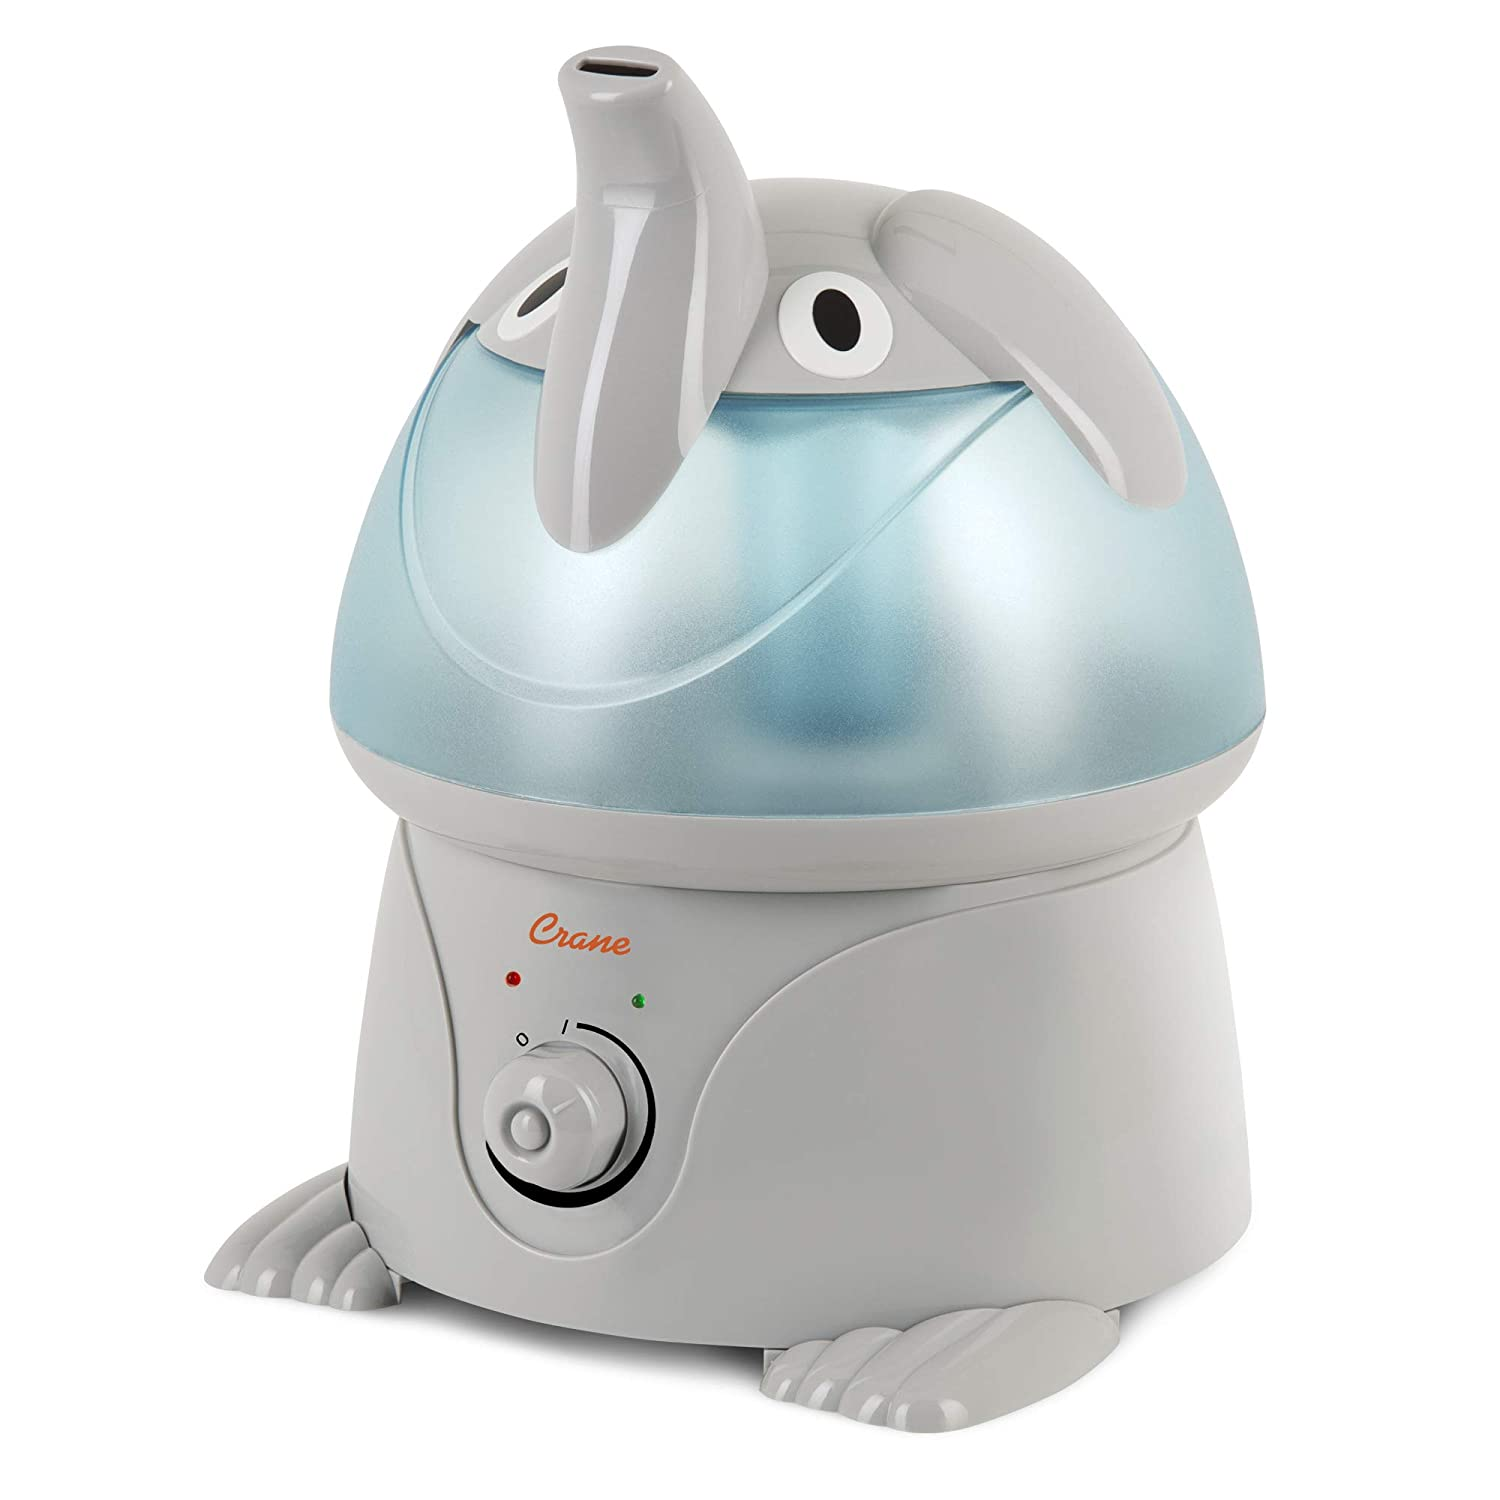 Crane USA Filter Free Cool Mist Humidifiers for Kids, Elephant